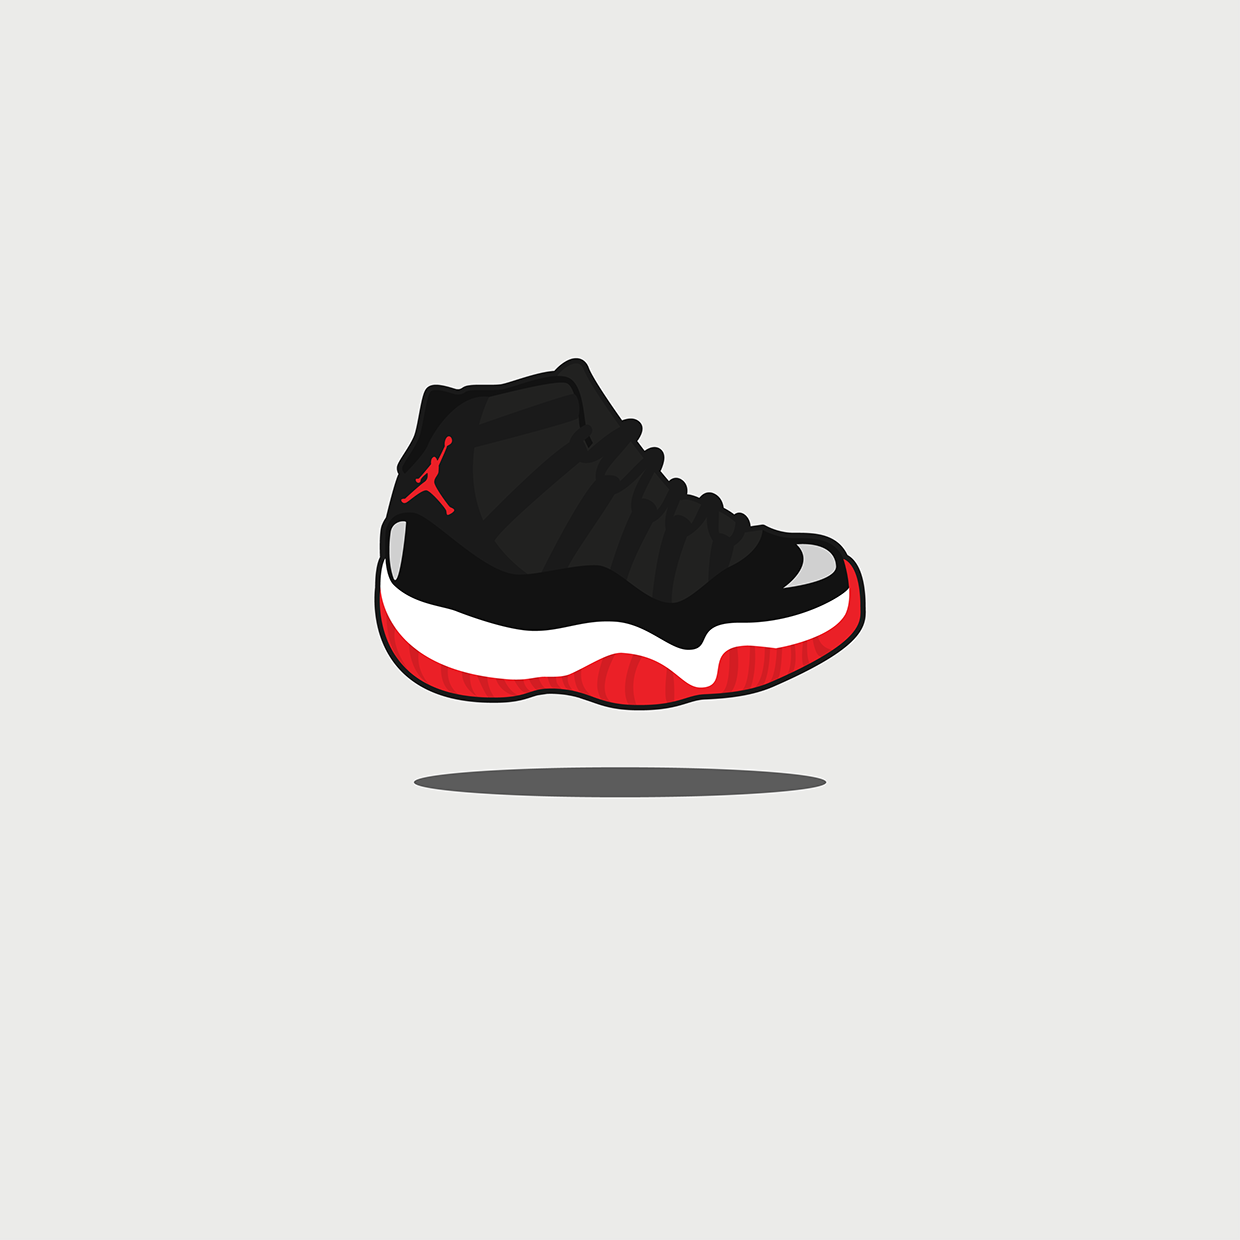 vector freeuse stock Cute Sneaker Illustration